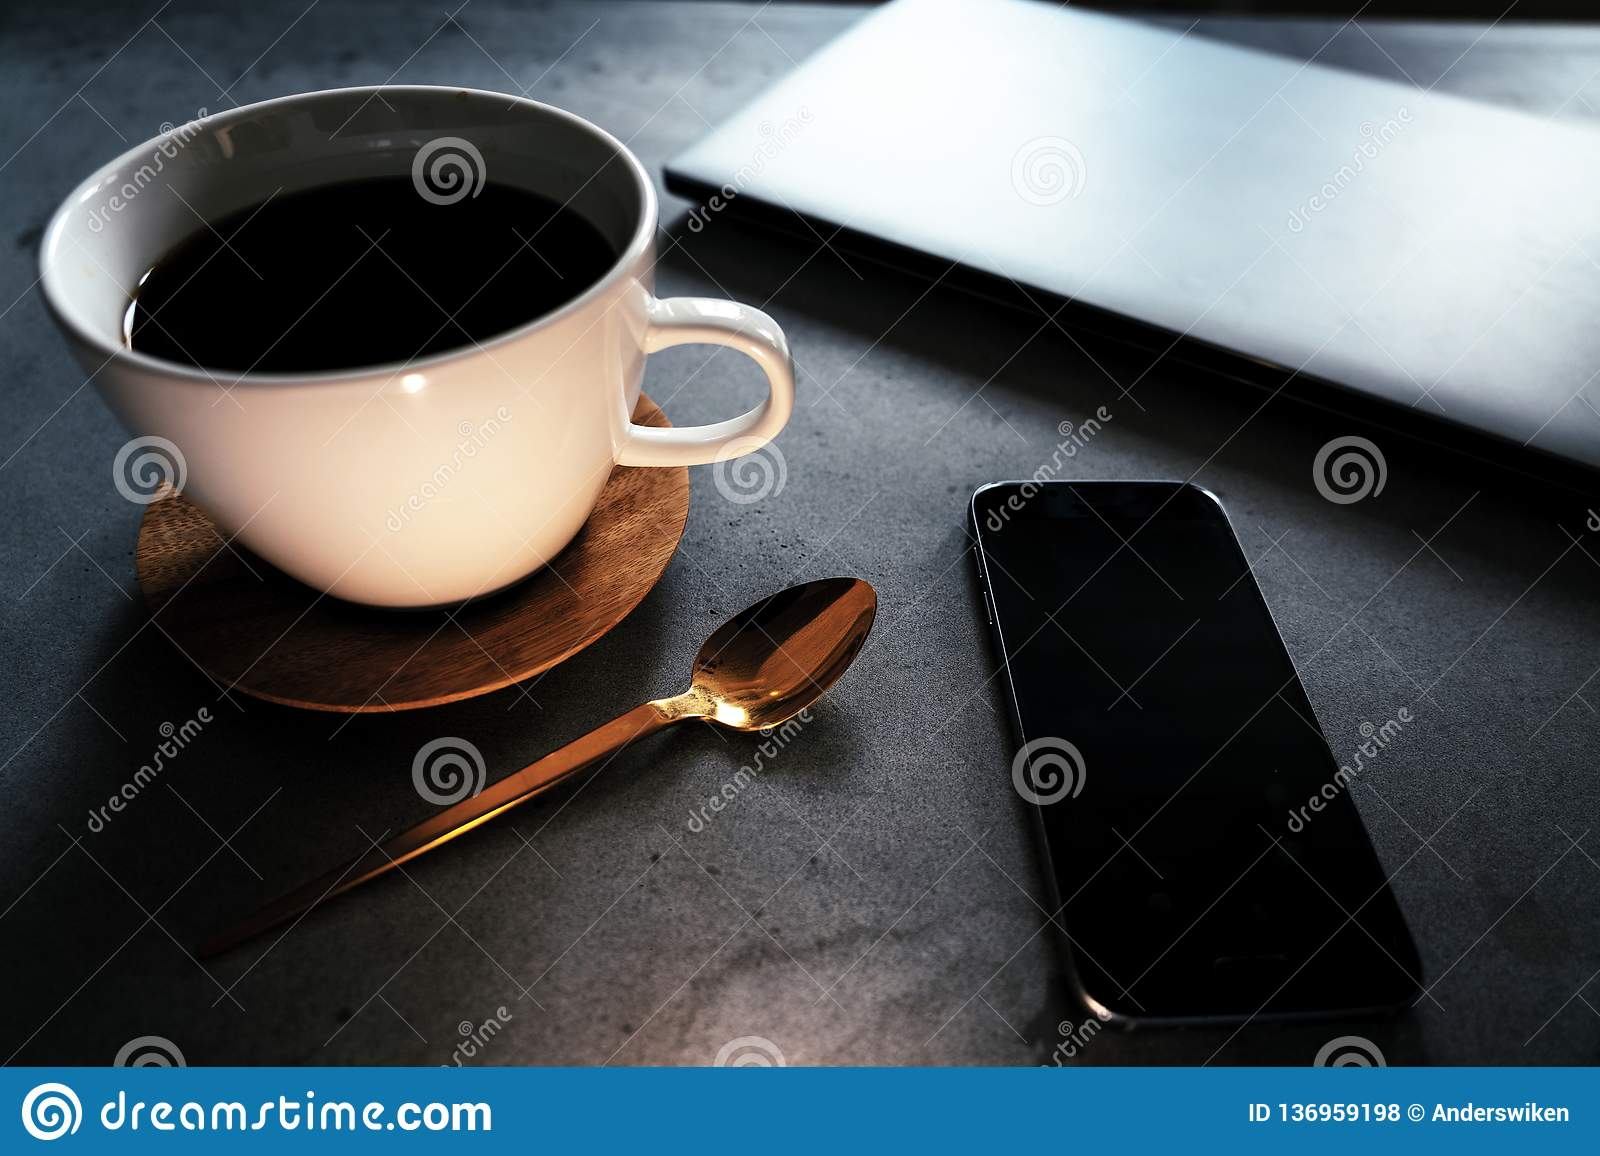 Coffee with laptop and smart phone on concrete table